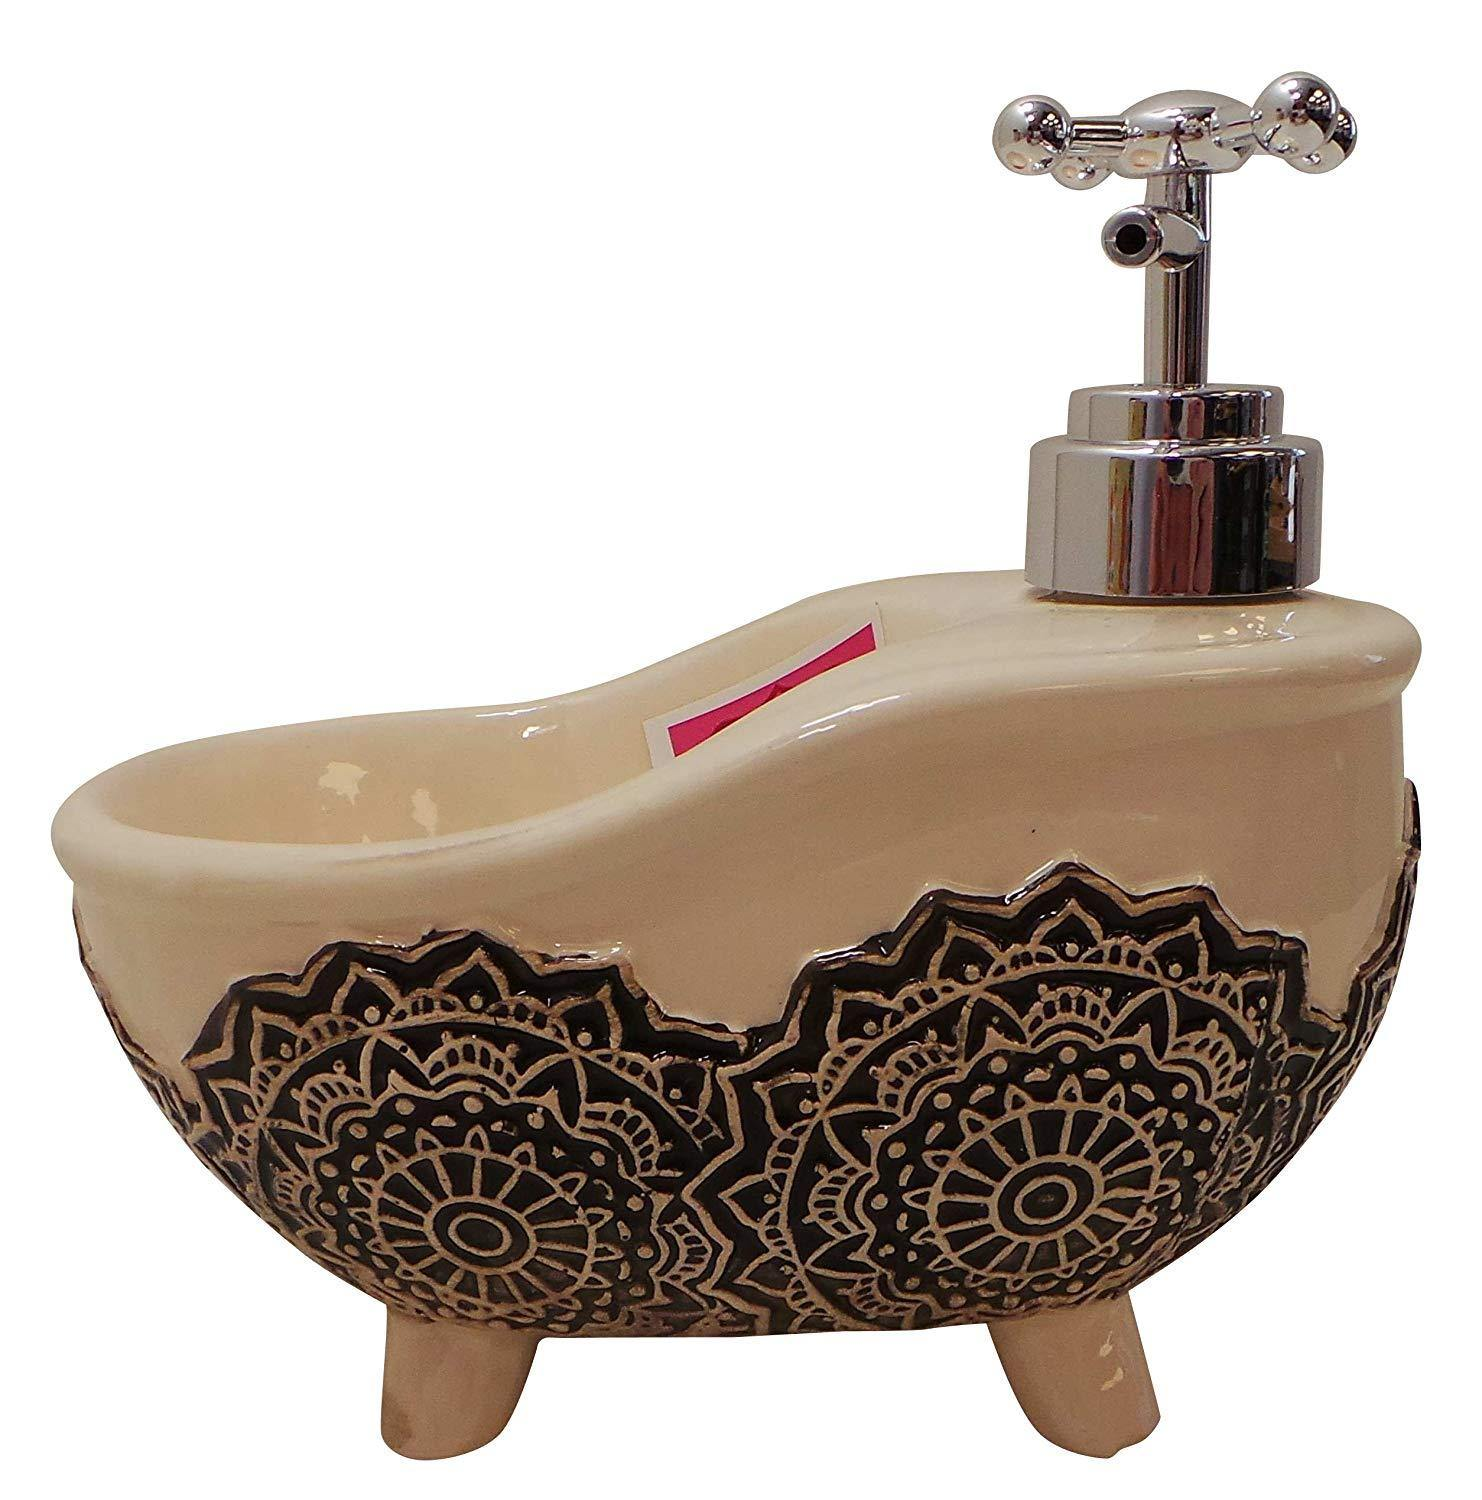 Madame Posh Bath Tub Soap Dispensers With Loafer kitchen, home Applian